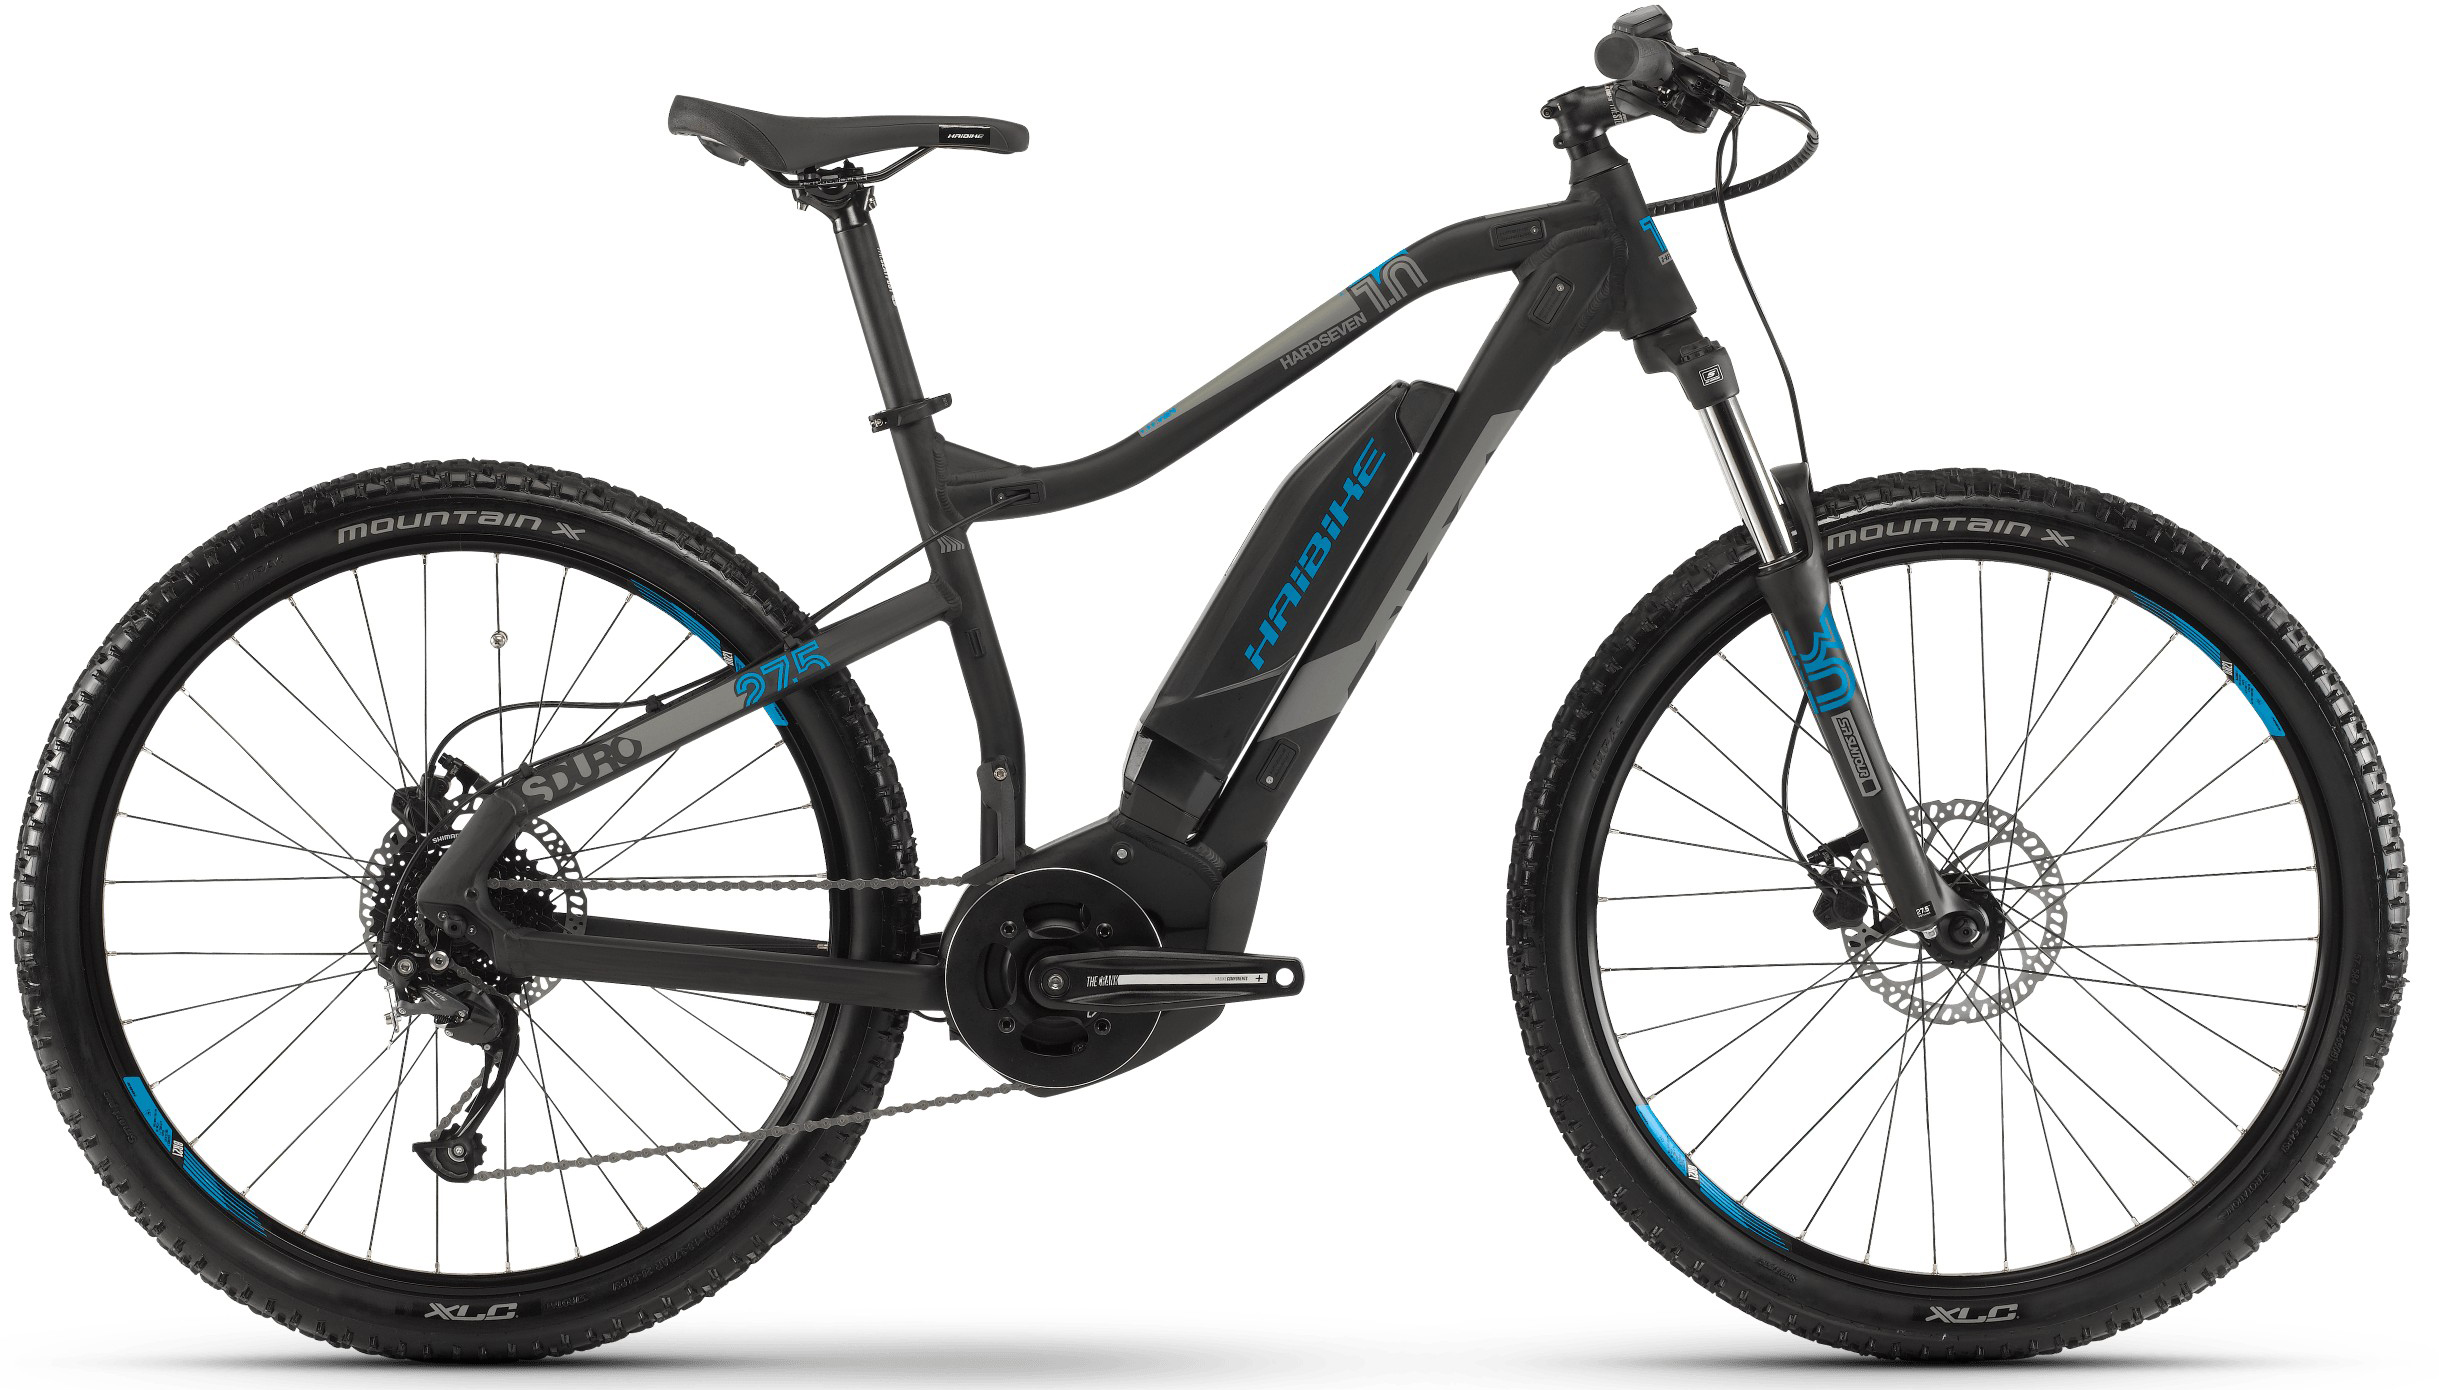 Велосипед Haibike SDURO HardSeven 1.0 400Wh 9-G Altus 2019 велосипед haibike sduro trekking 4 0 he 400wh 10s deore 2018